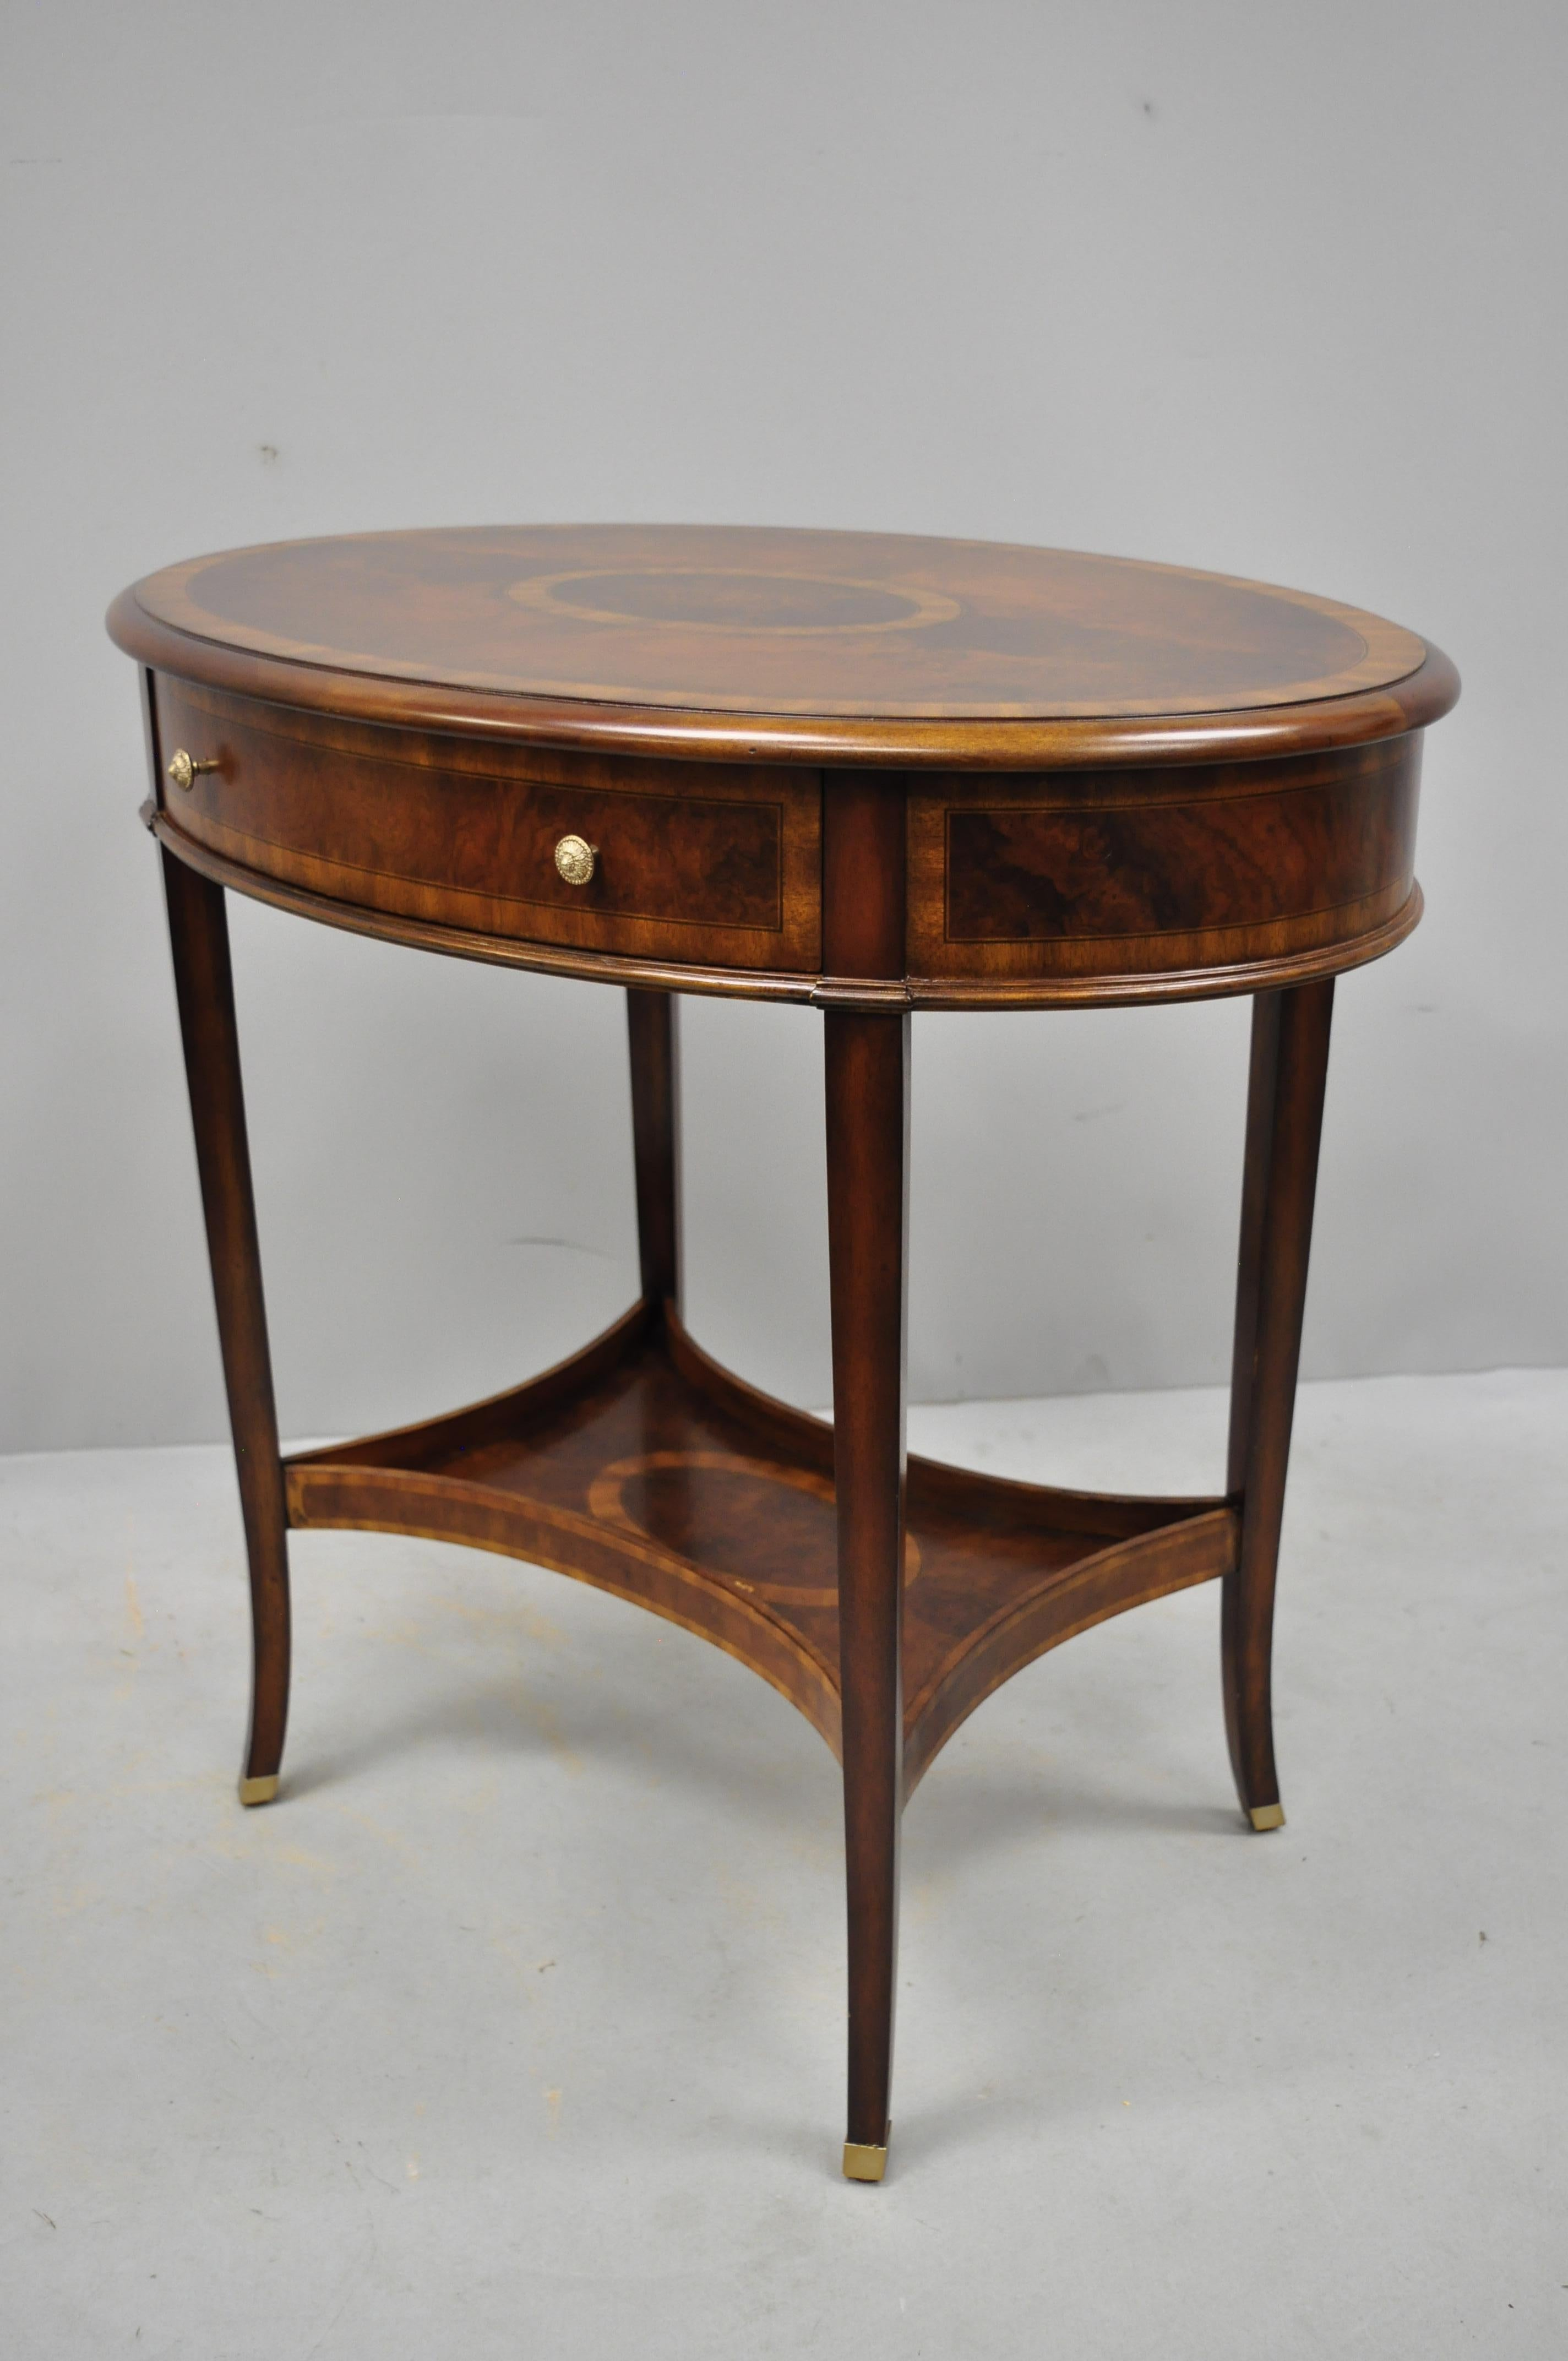 Maitland Smith Mahogany Oval Inlaid One Drawer Occasional Accent Side Table